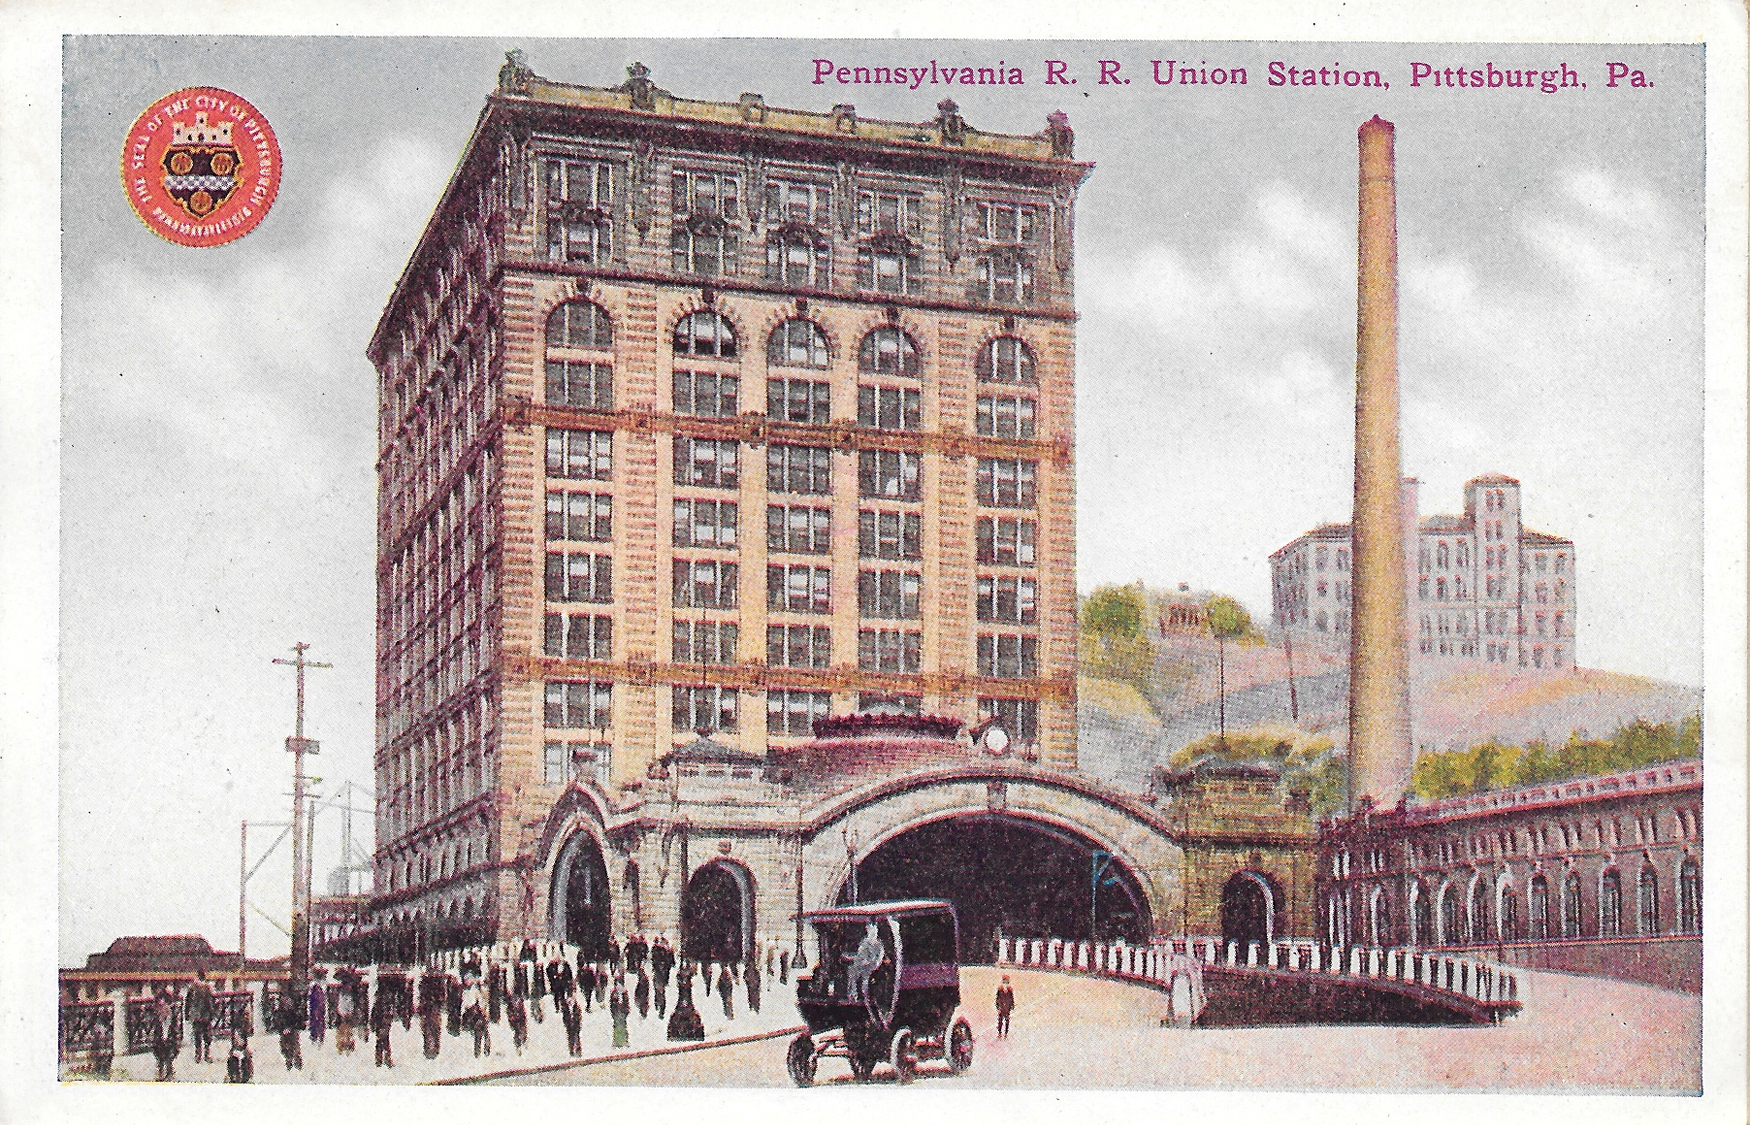 Postcard20-PennsylvaniaRRUnionStation